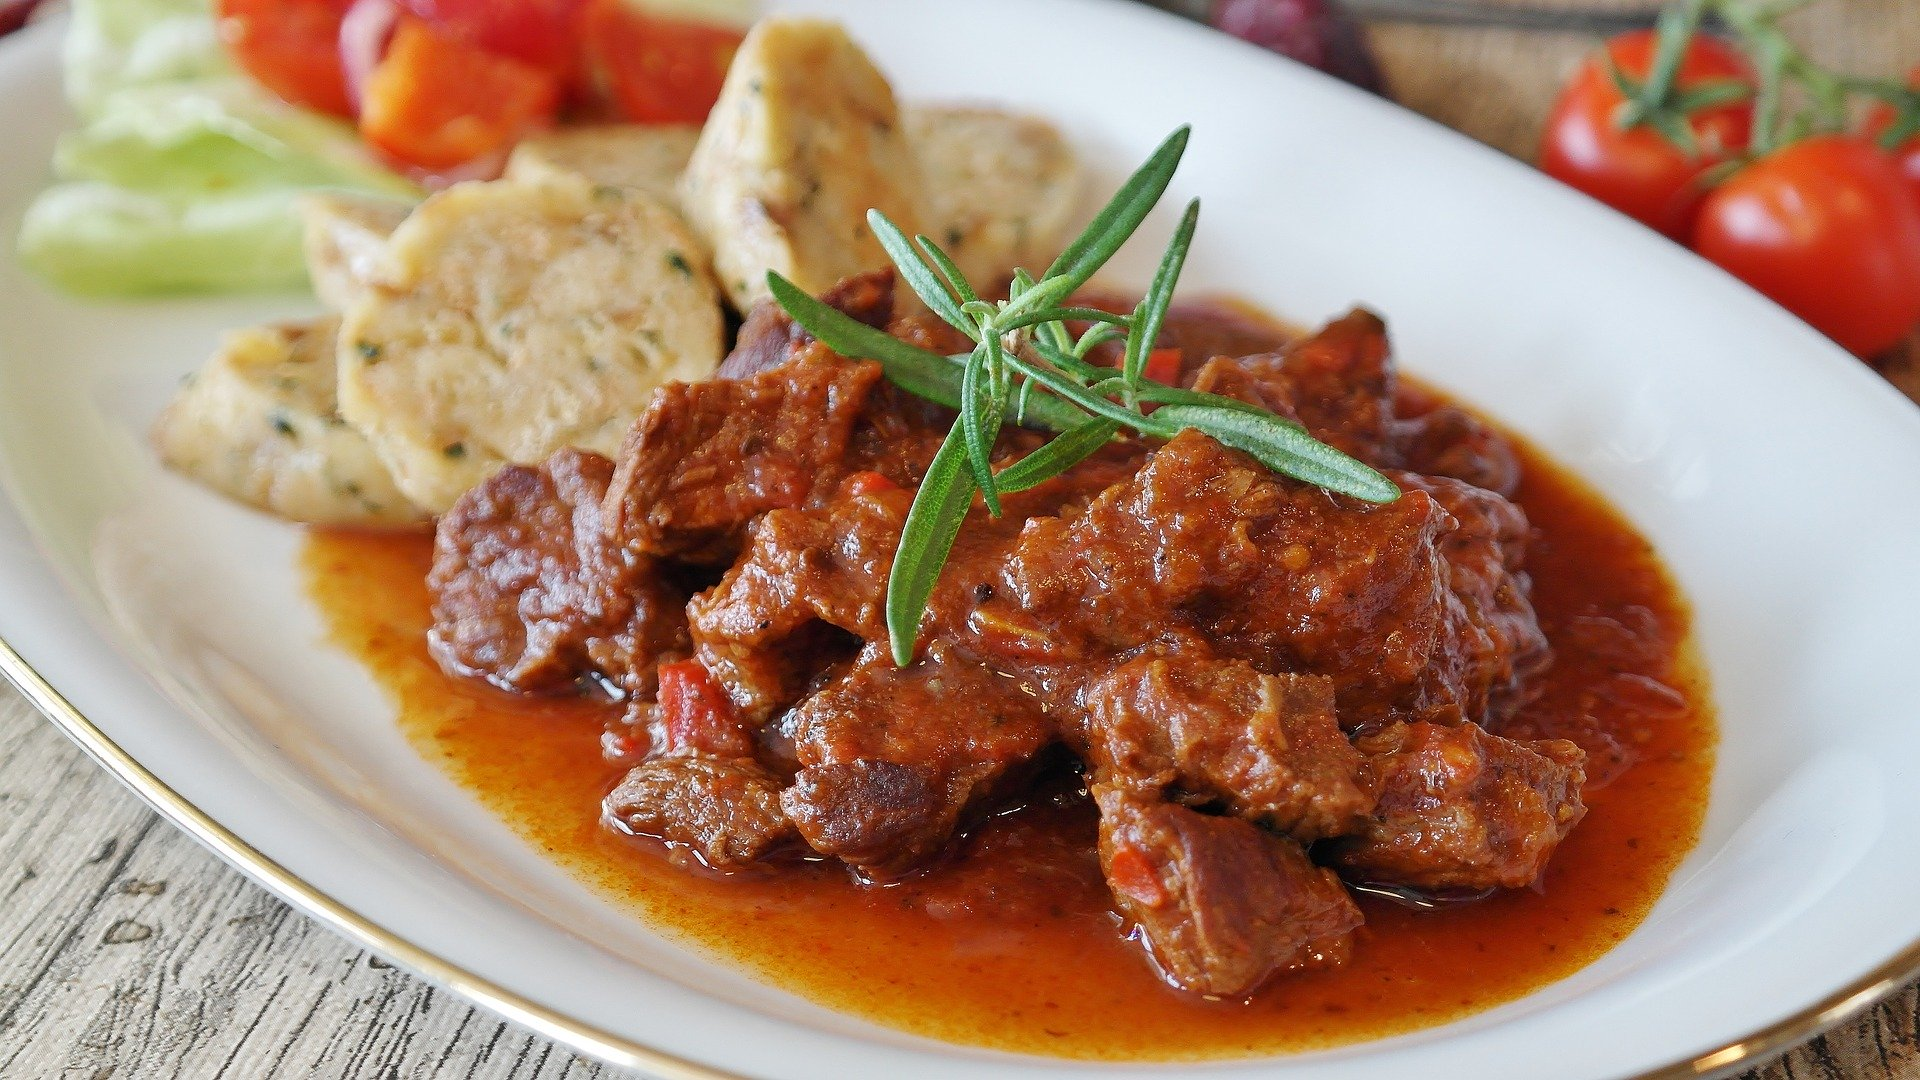 Goulash - Estofado de ternera